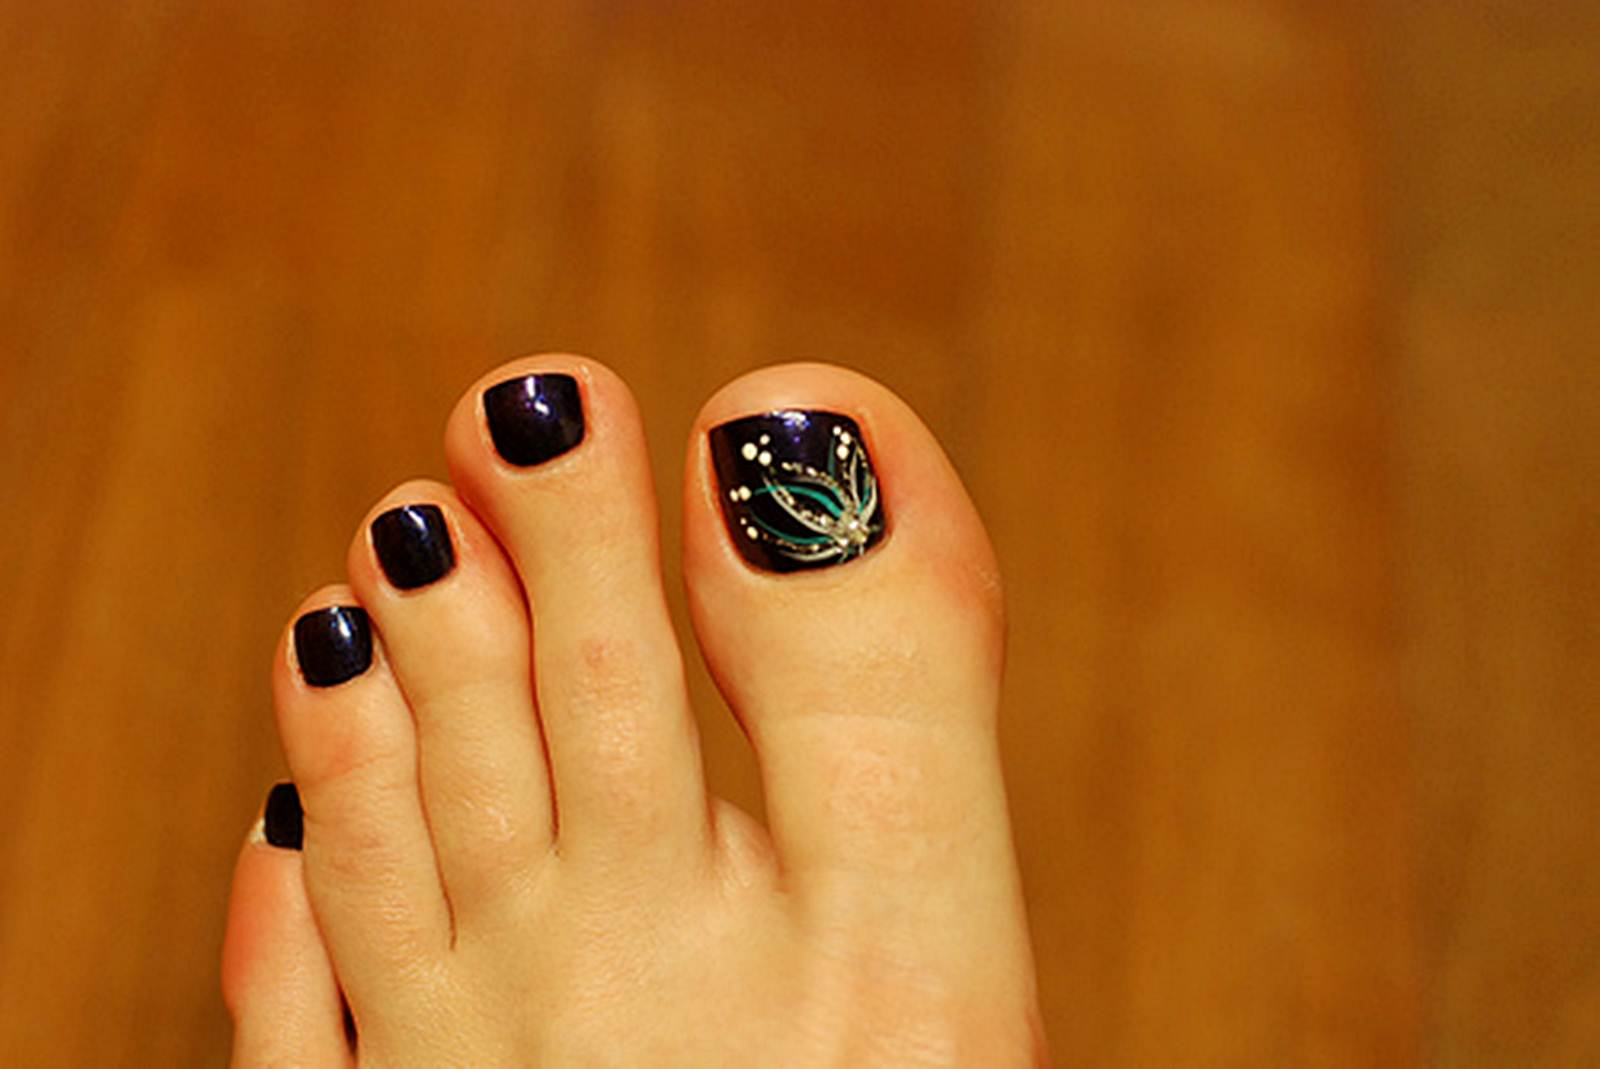 Black Toe Nails With Flowers Design Nail Art